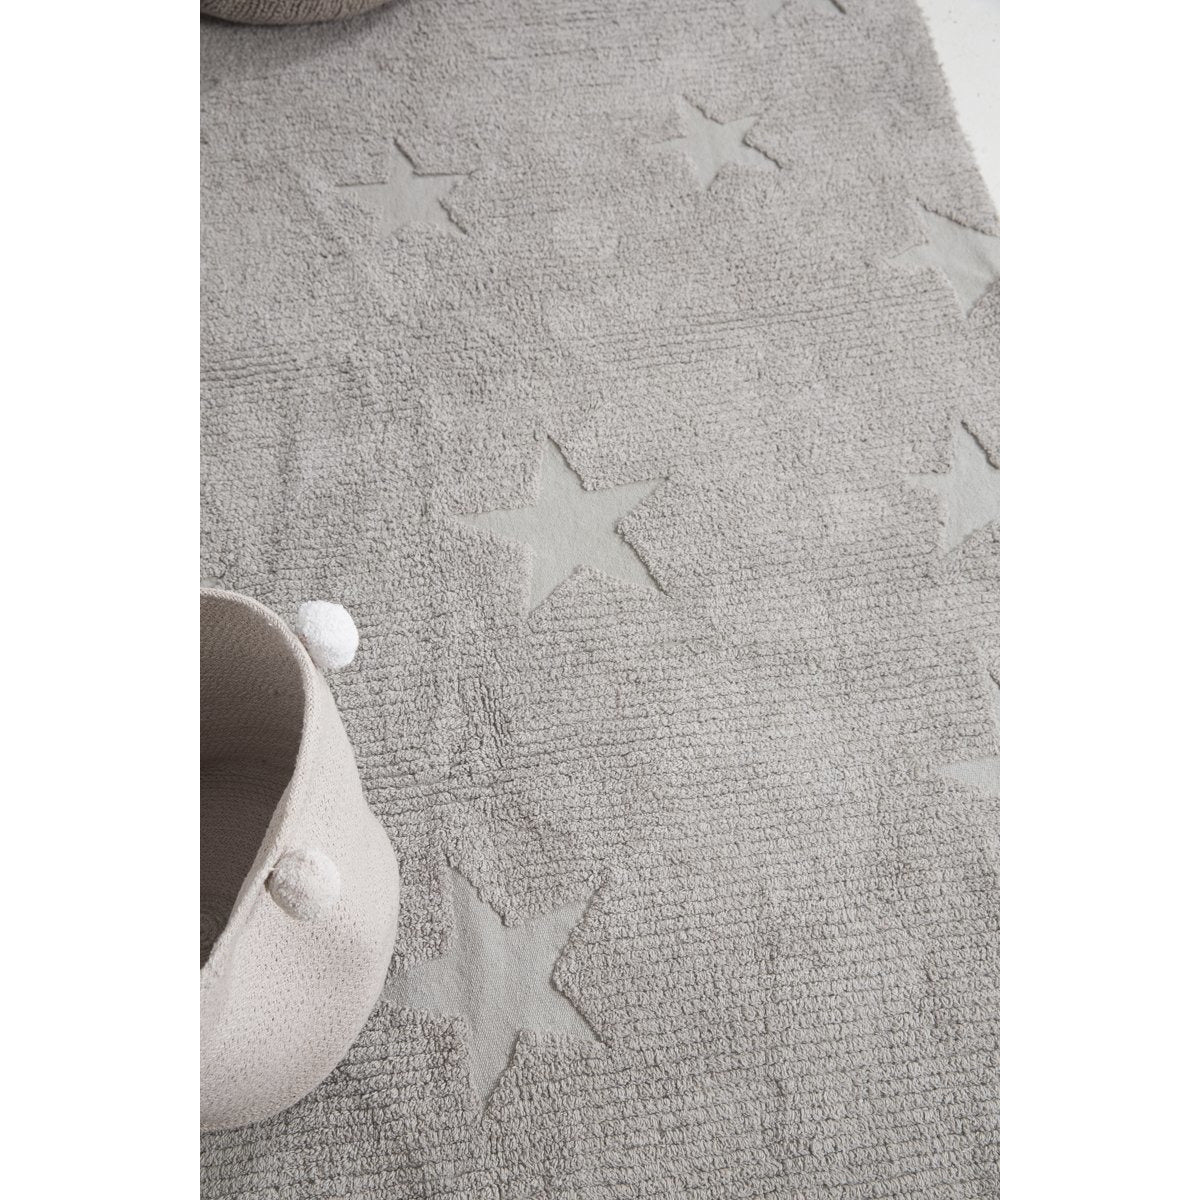 Hippy Stars Grey Washable Rug